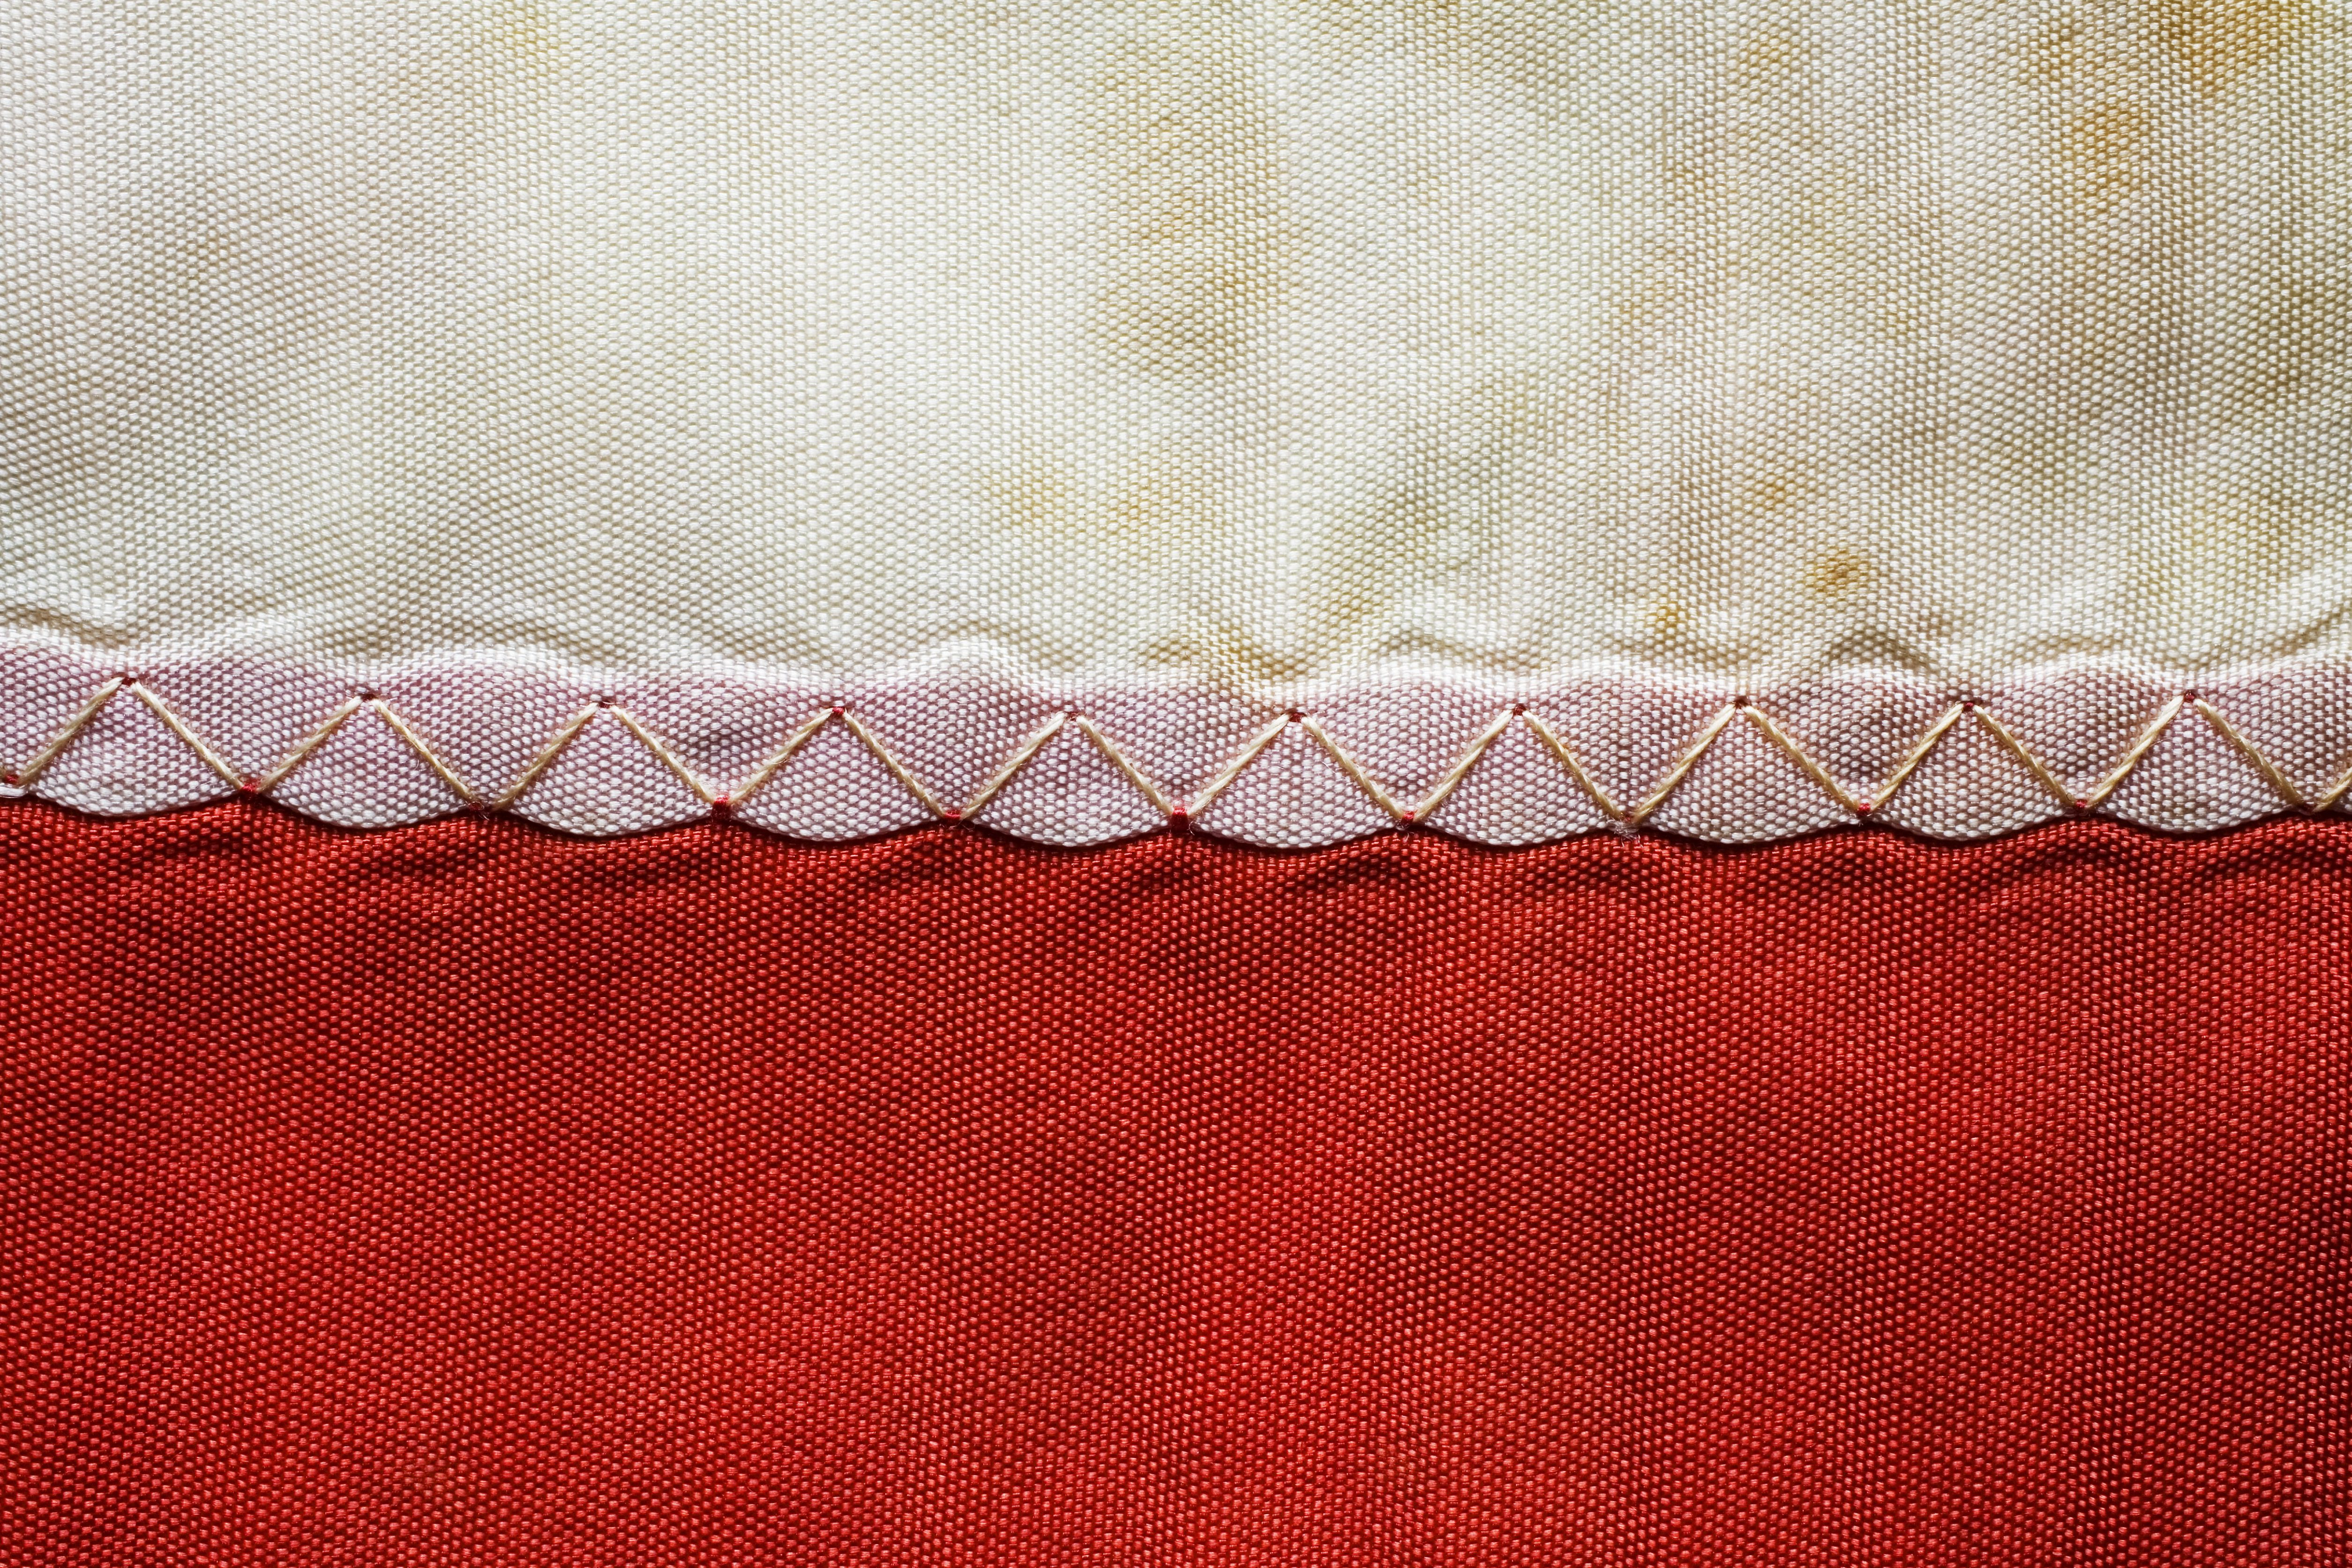 Decorative zig-zag stitch on heavy cotton fabric of an old flag, close-up